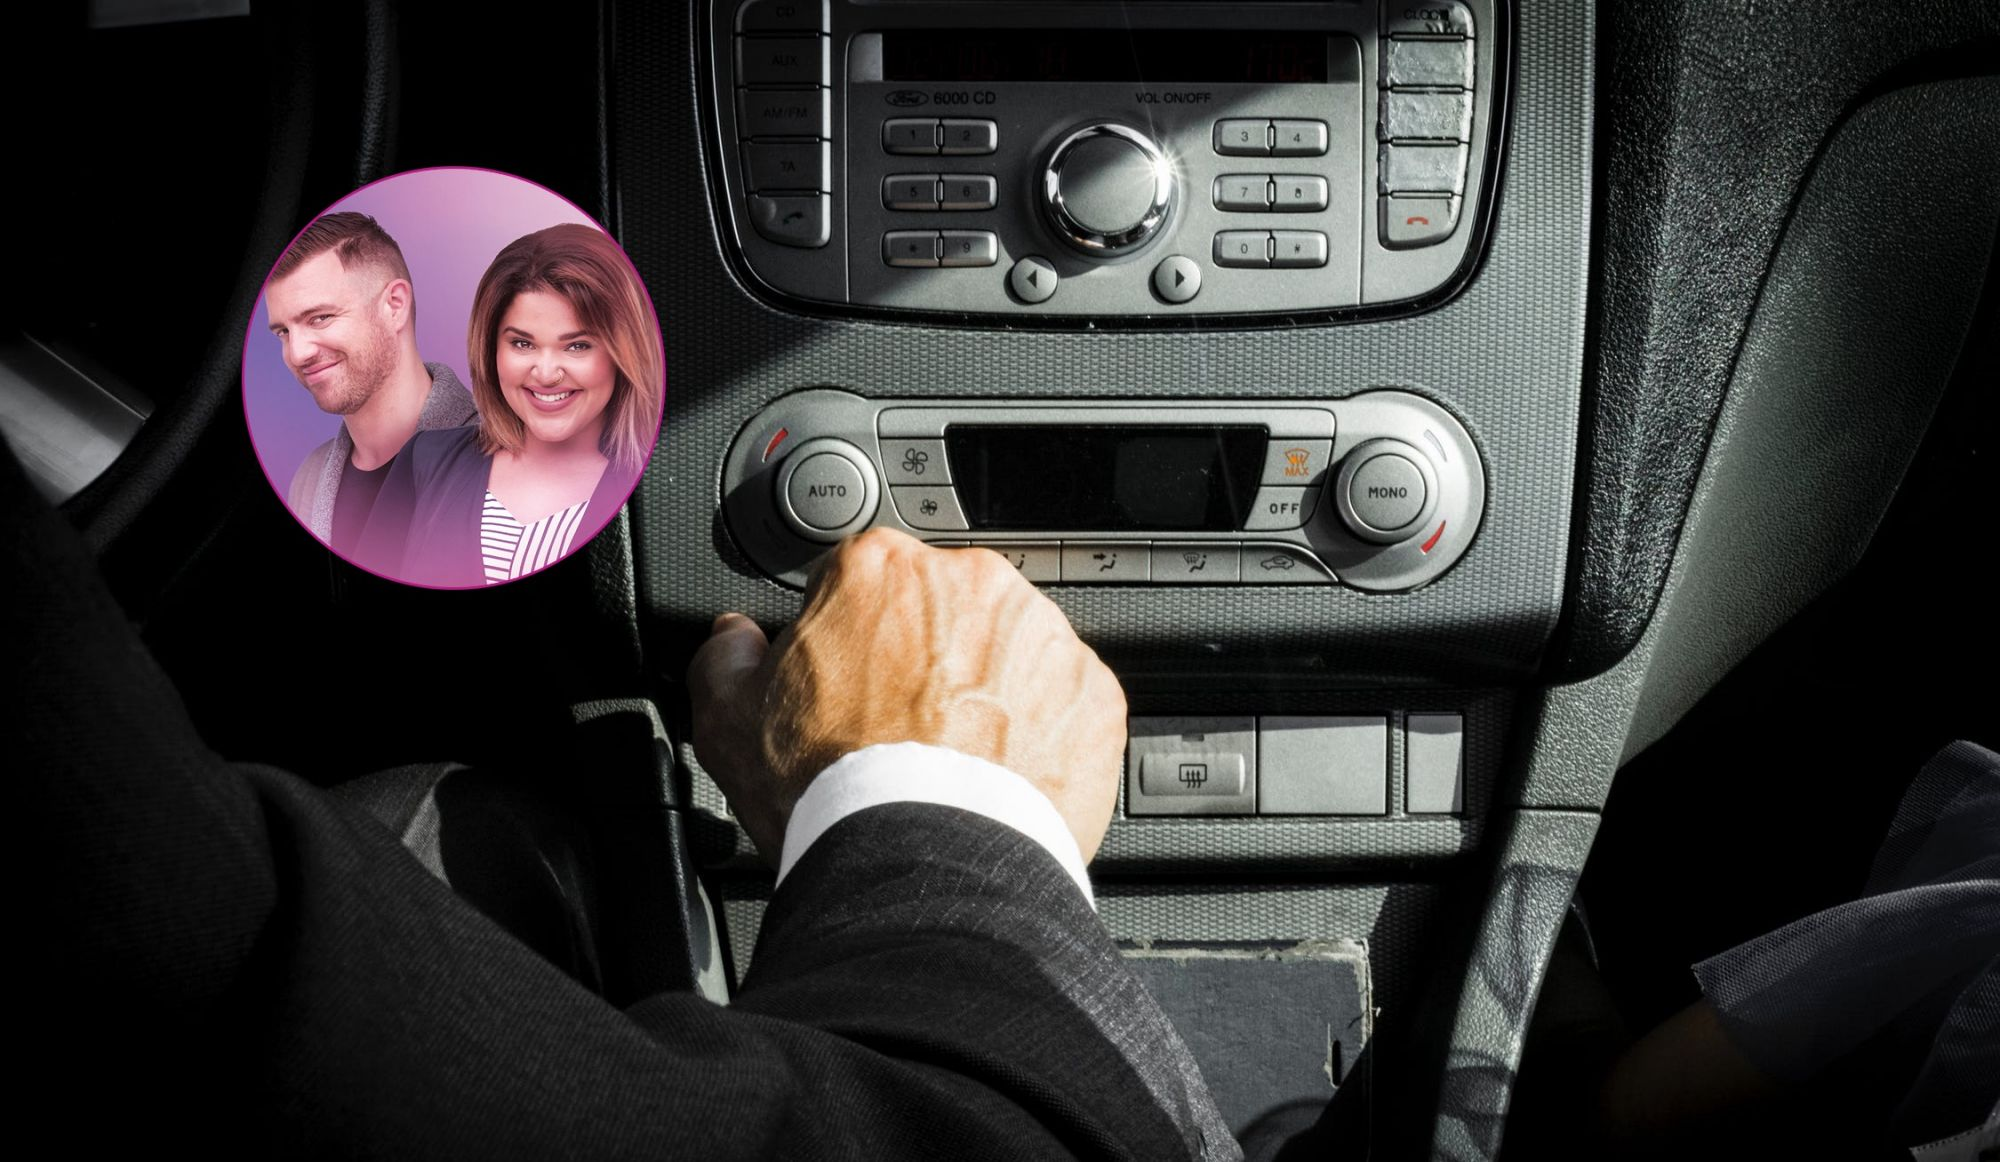 The Safest and Most Dangerous Songs for Driving